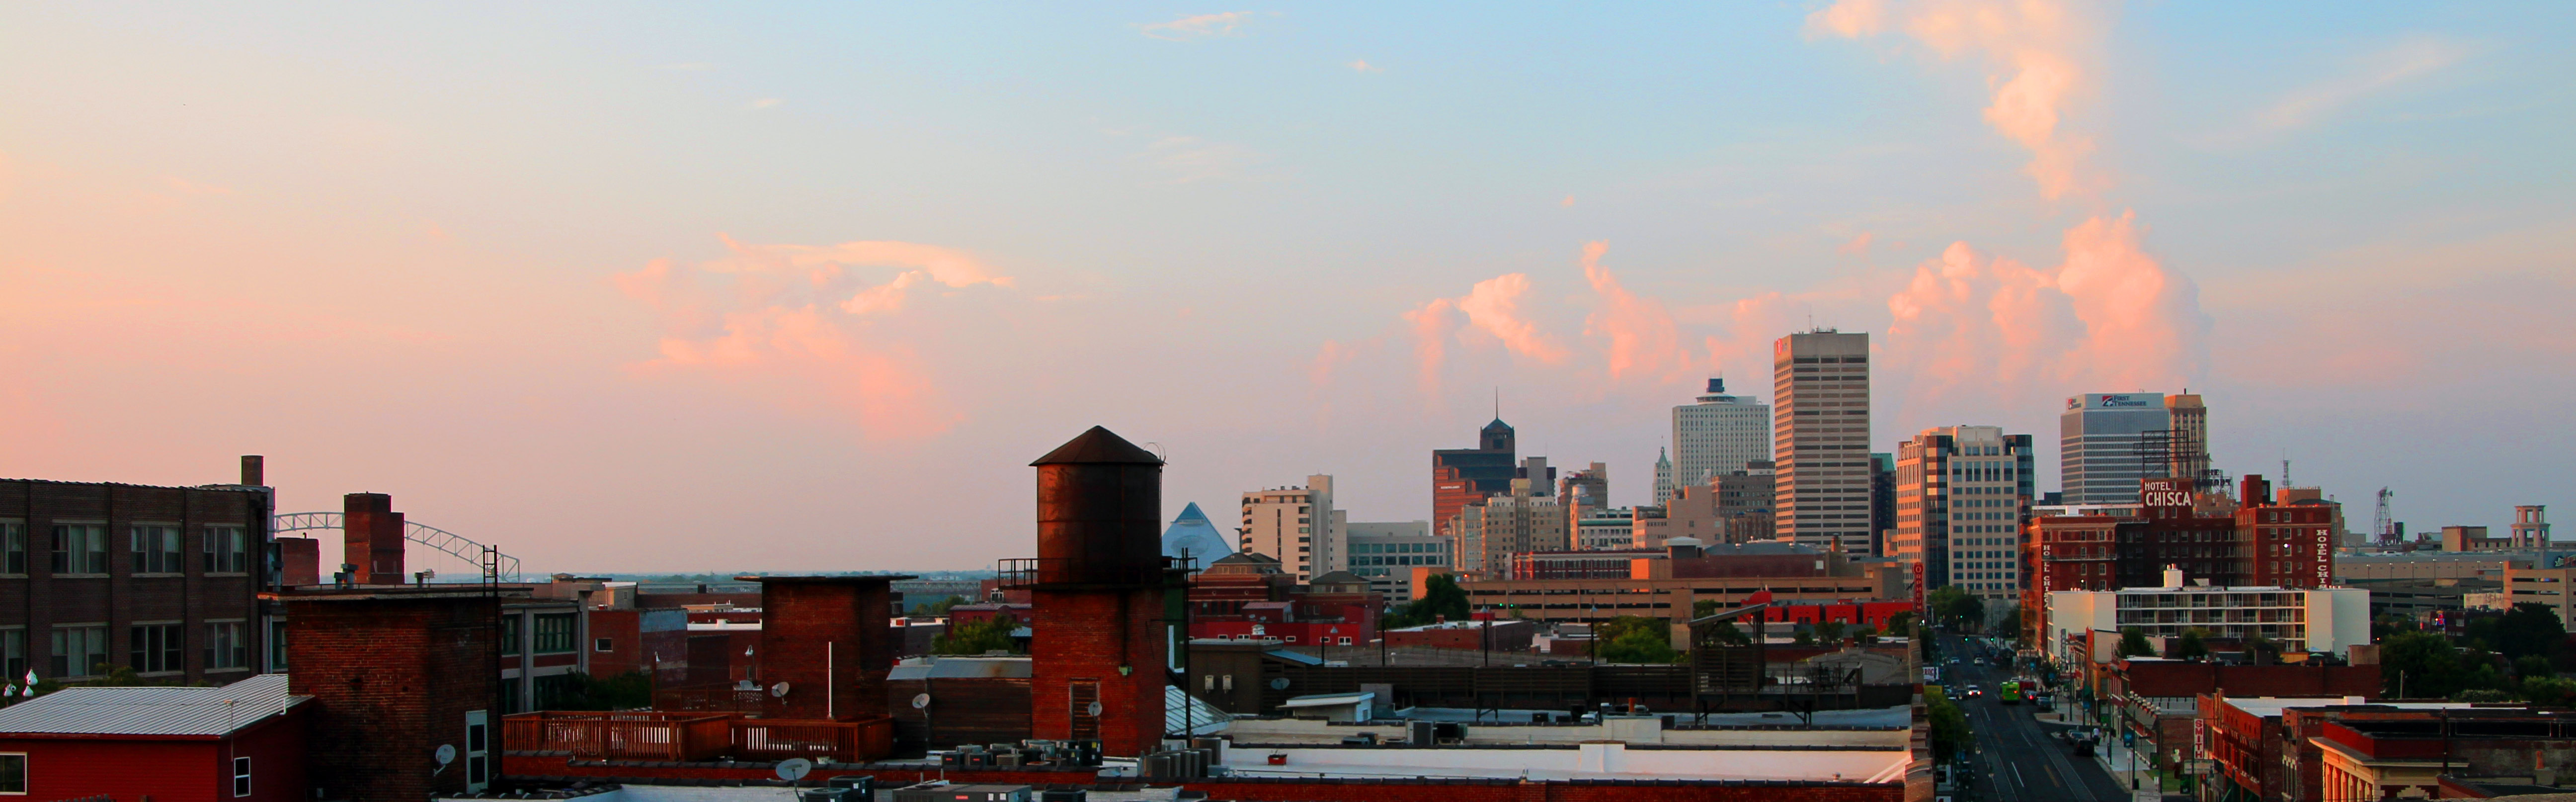 Known as the Bluff City, Memphis is Tennessee's most populated city.